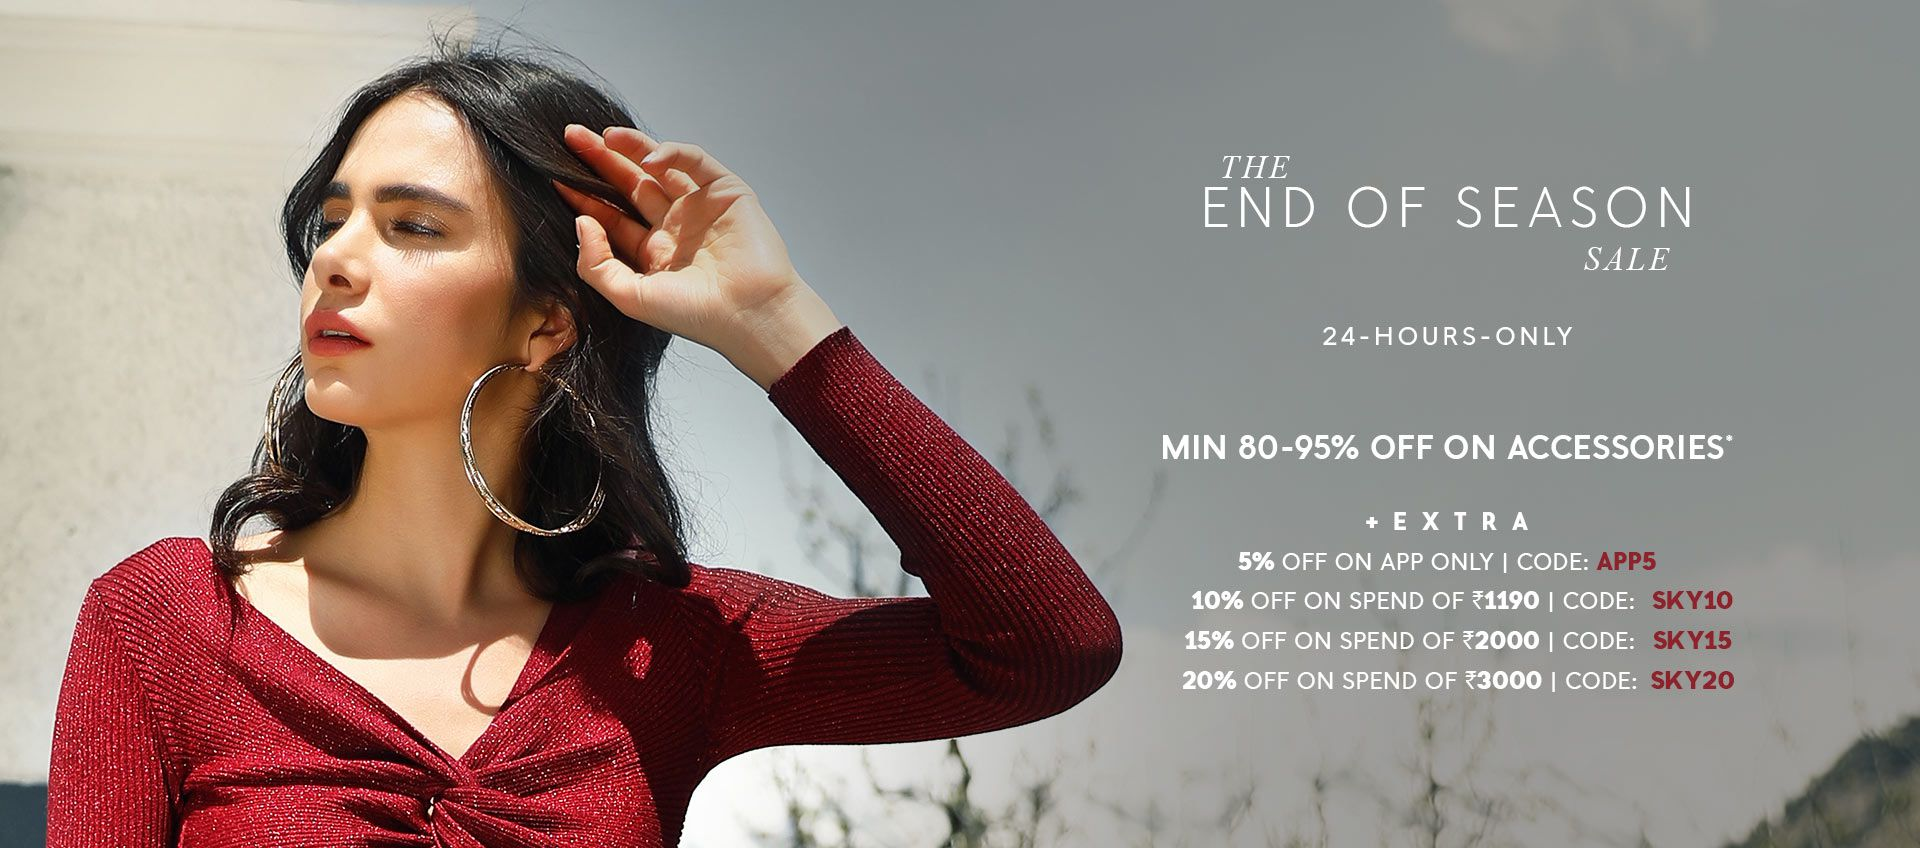 MIN 80-90% OFF ON ACCESSORIES